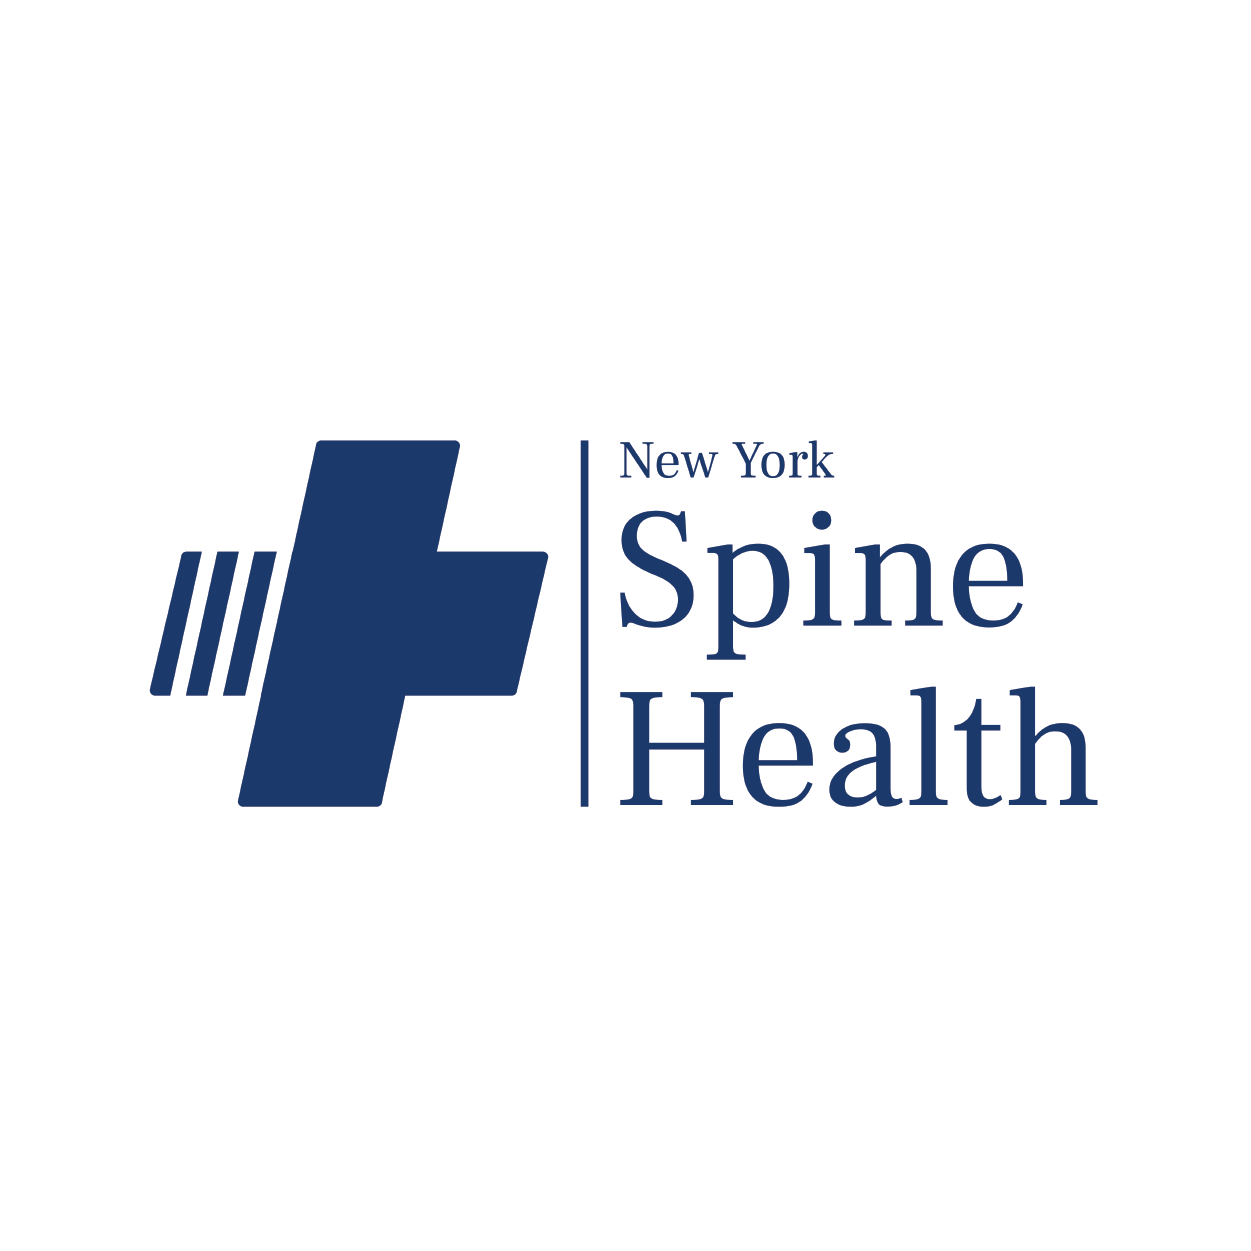 New York Spine Health